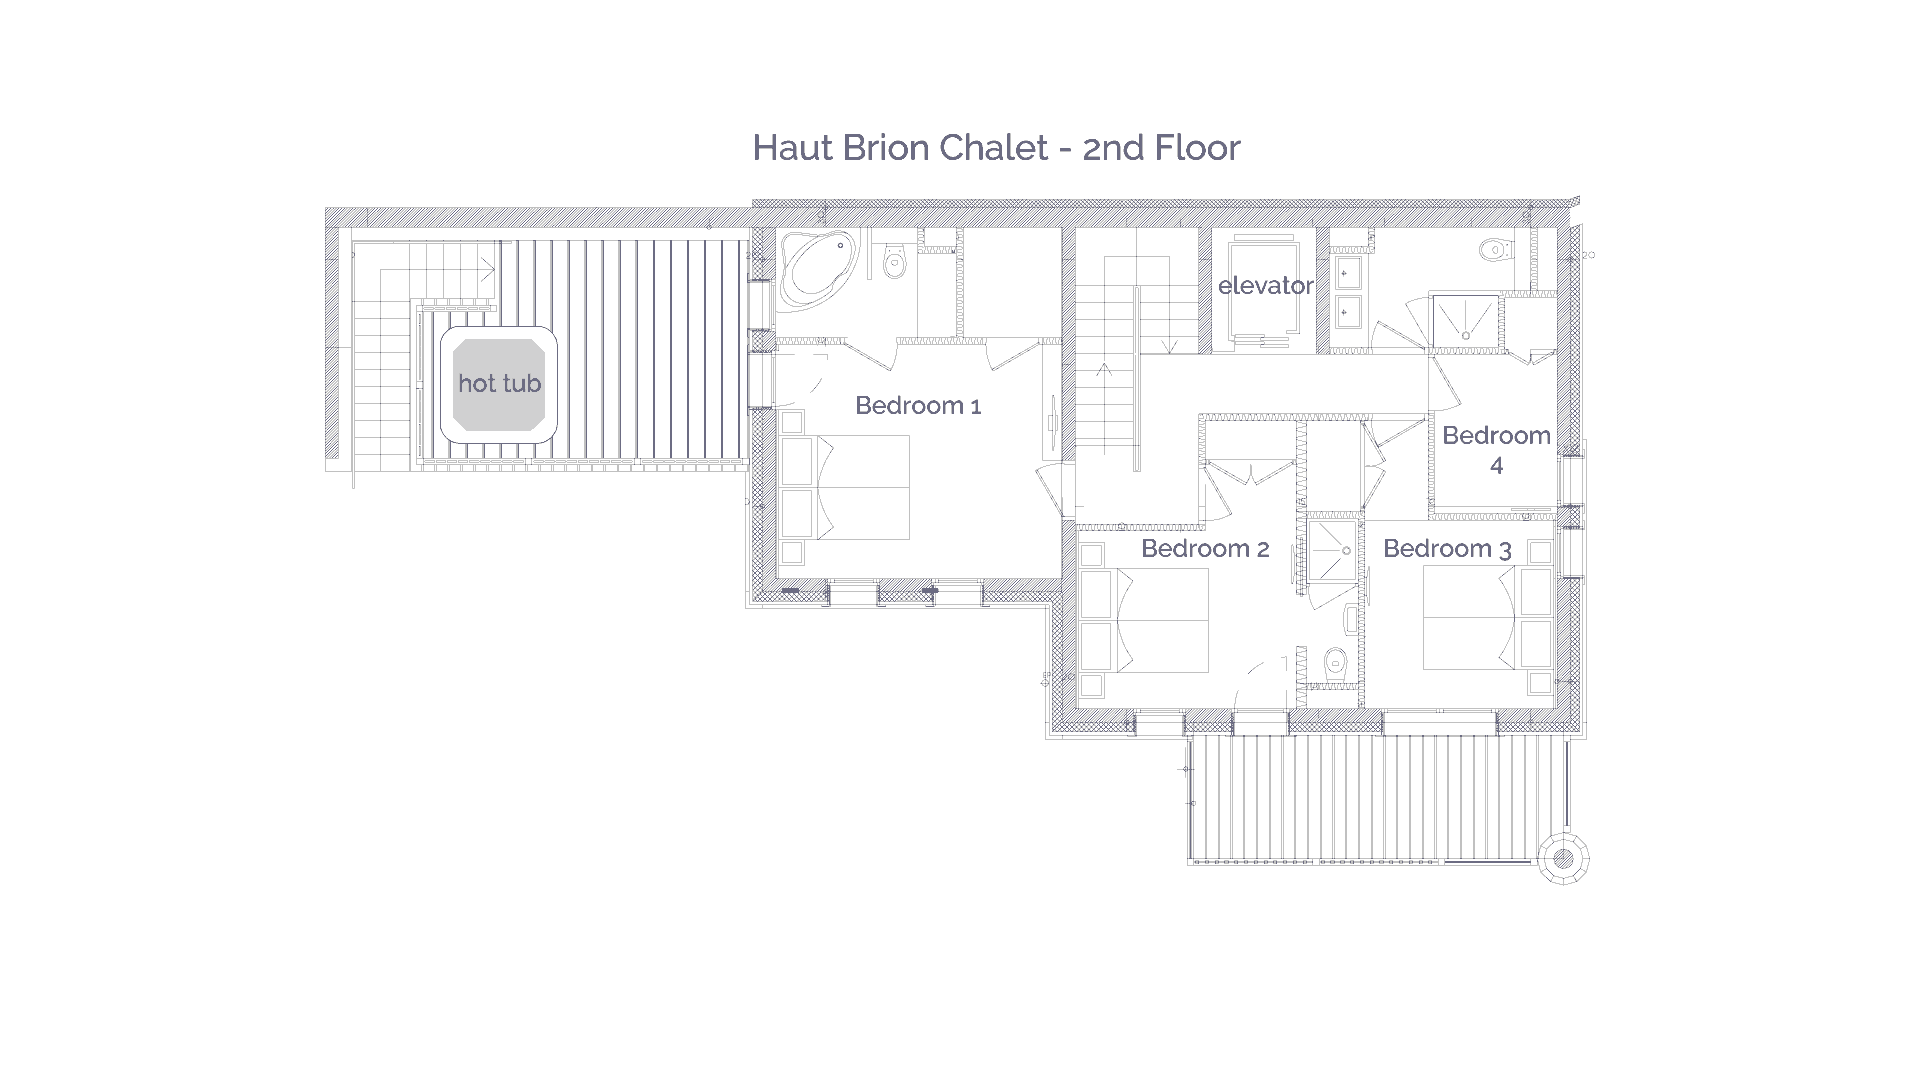 Haut Brion luxury self catered chalet in Sainte Foy, 2nd floor plans